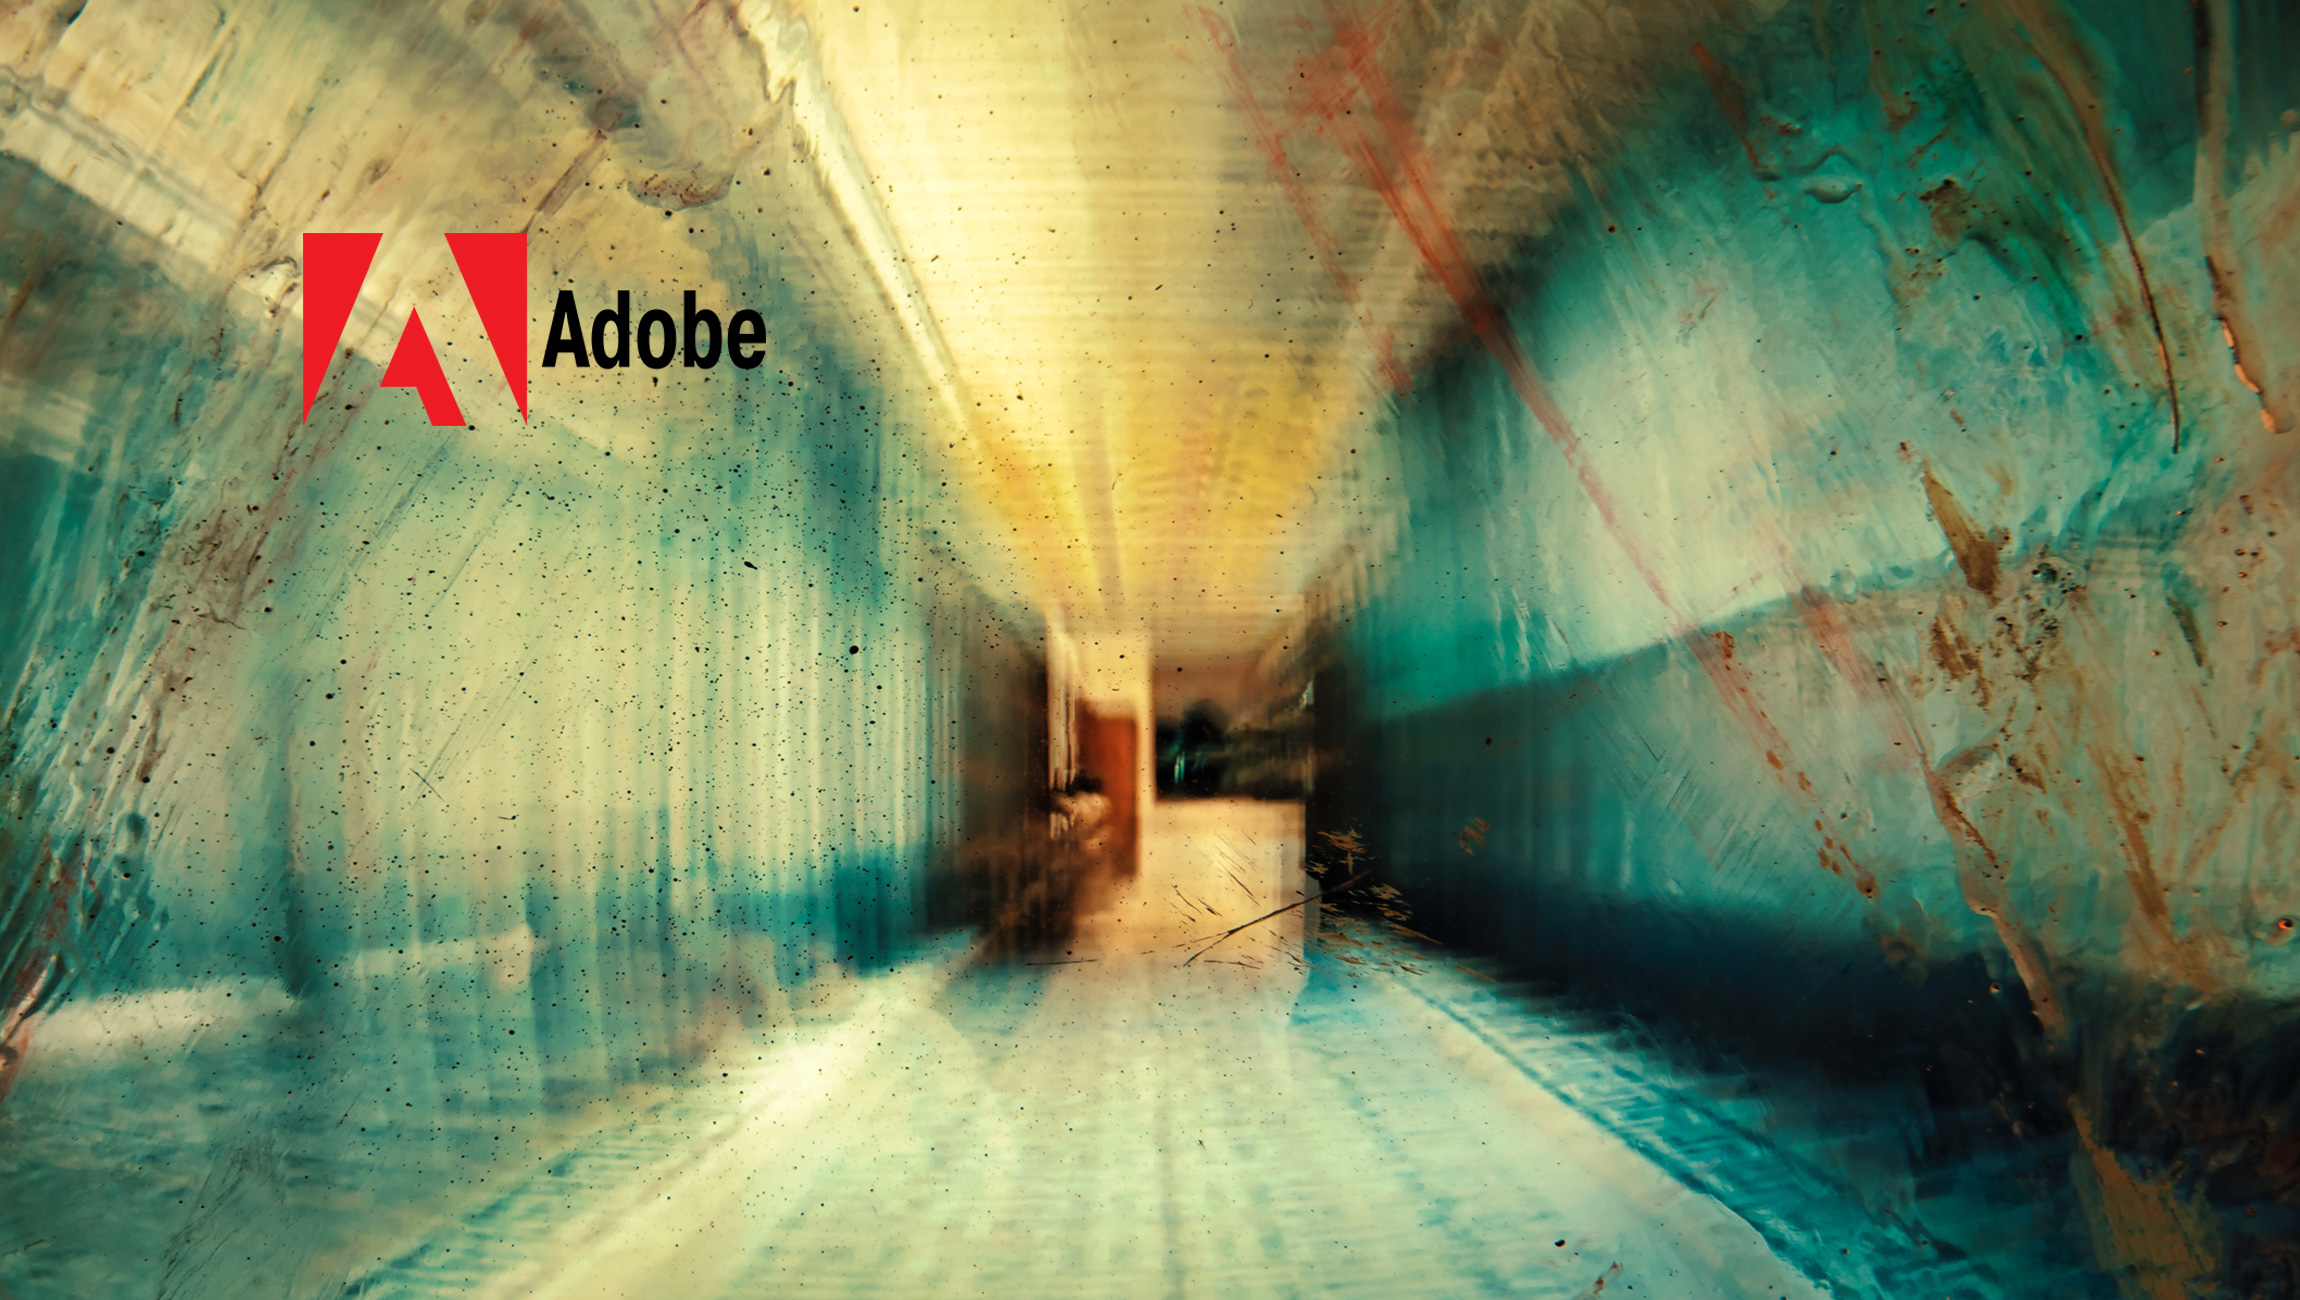 Adobe Delivers Commerce Advances for Small and Mid-Market Businesses